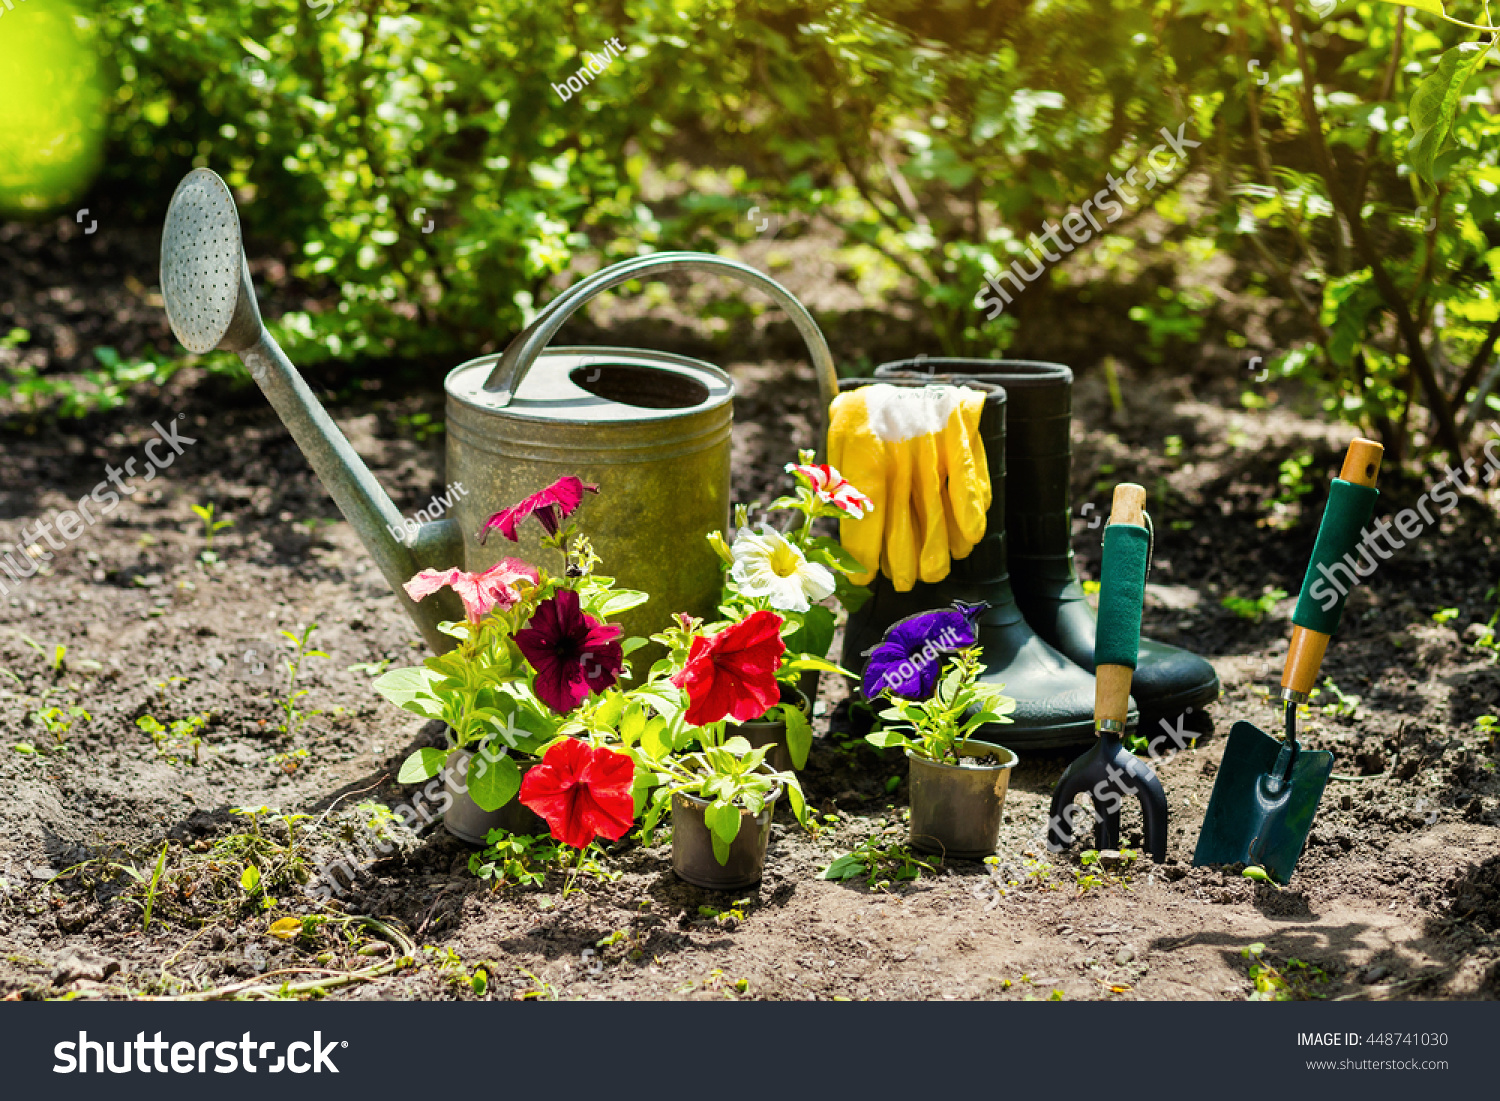 Gardening tools and flowers in the garden watering can for Gardening tools watering